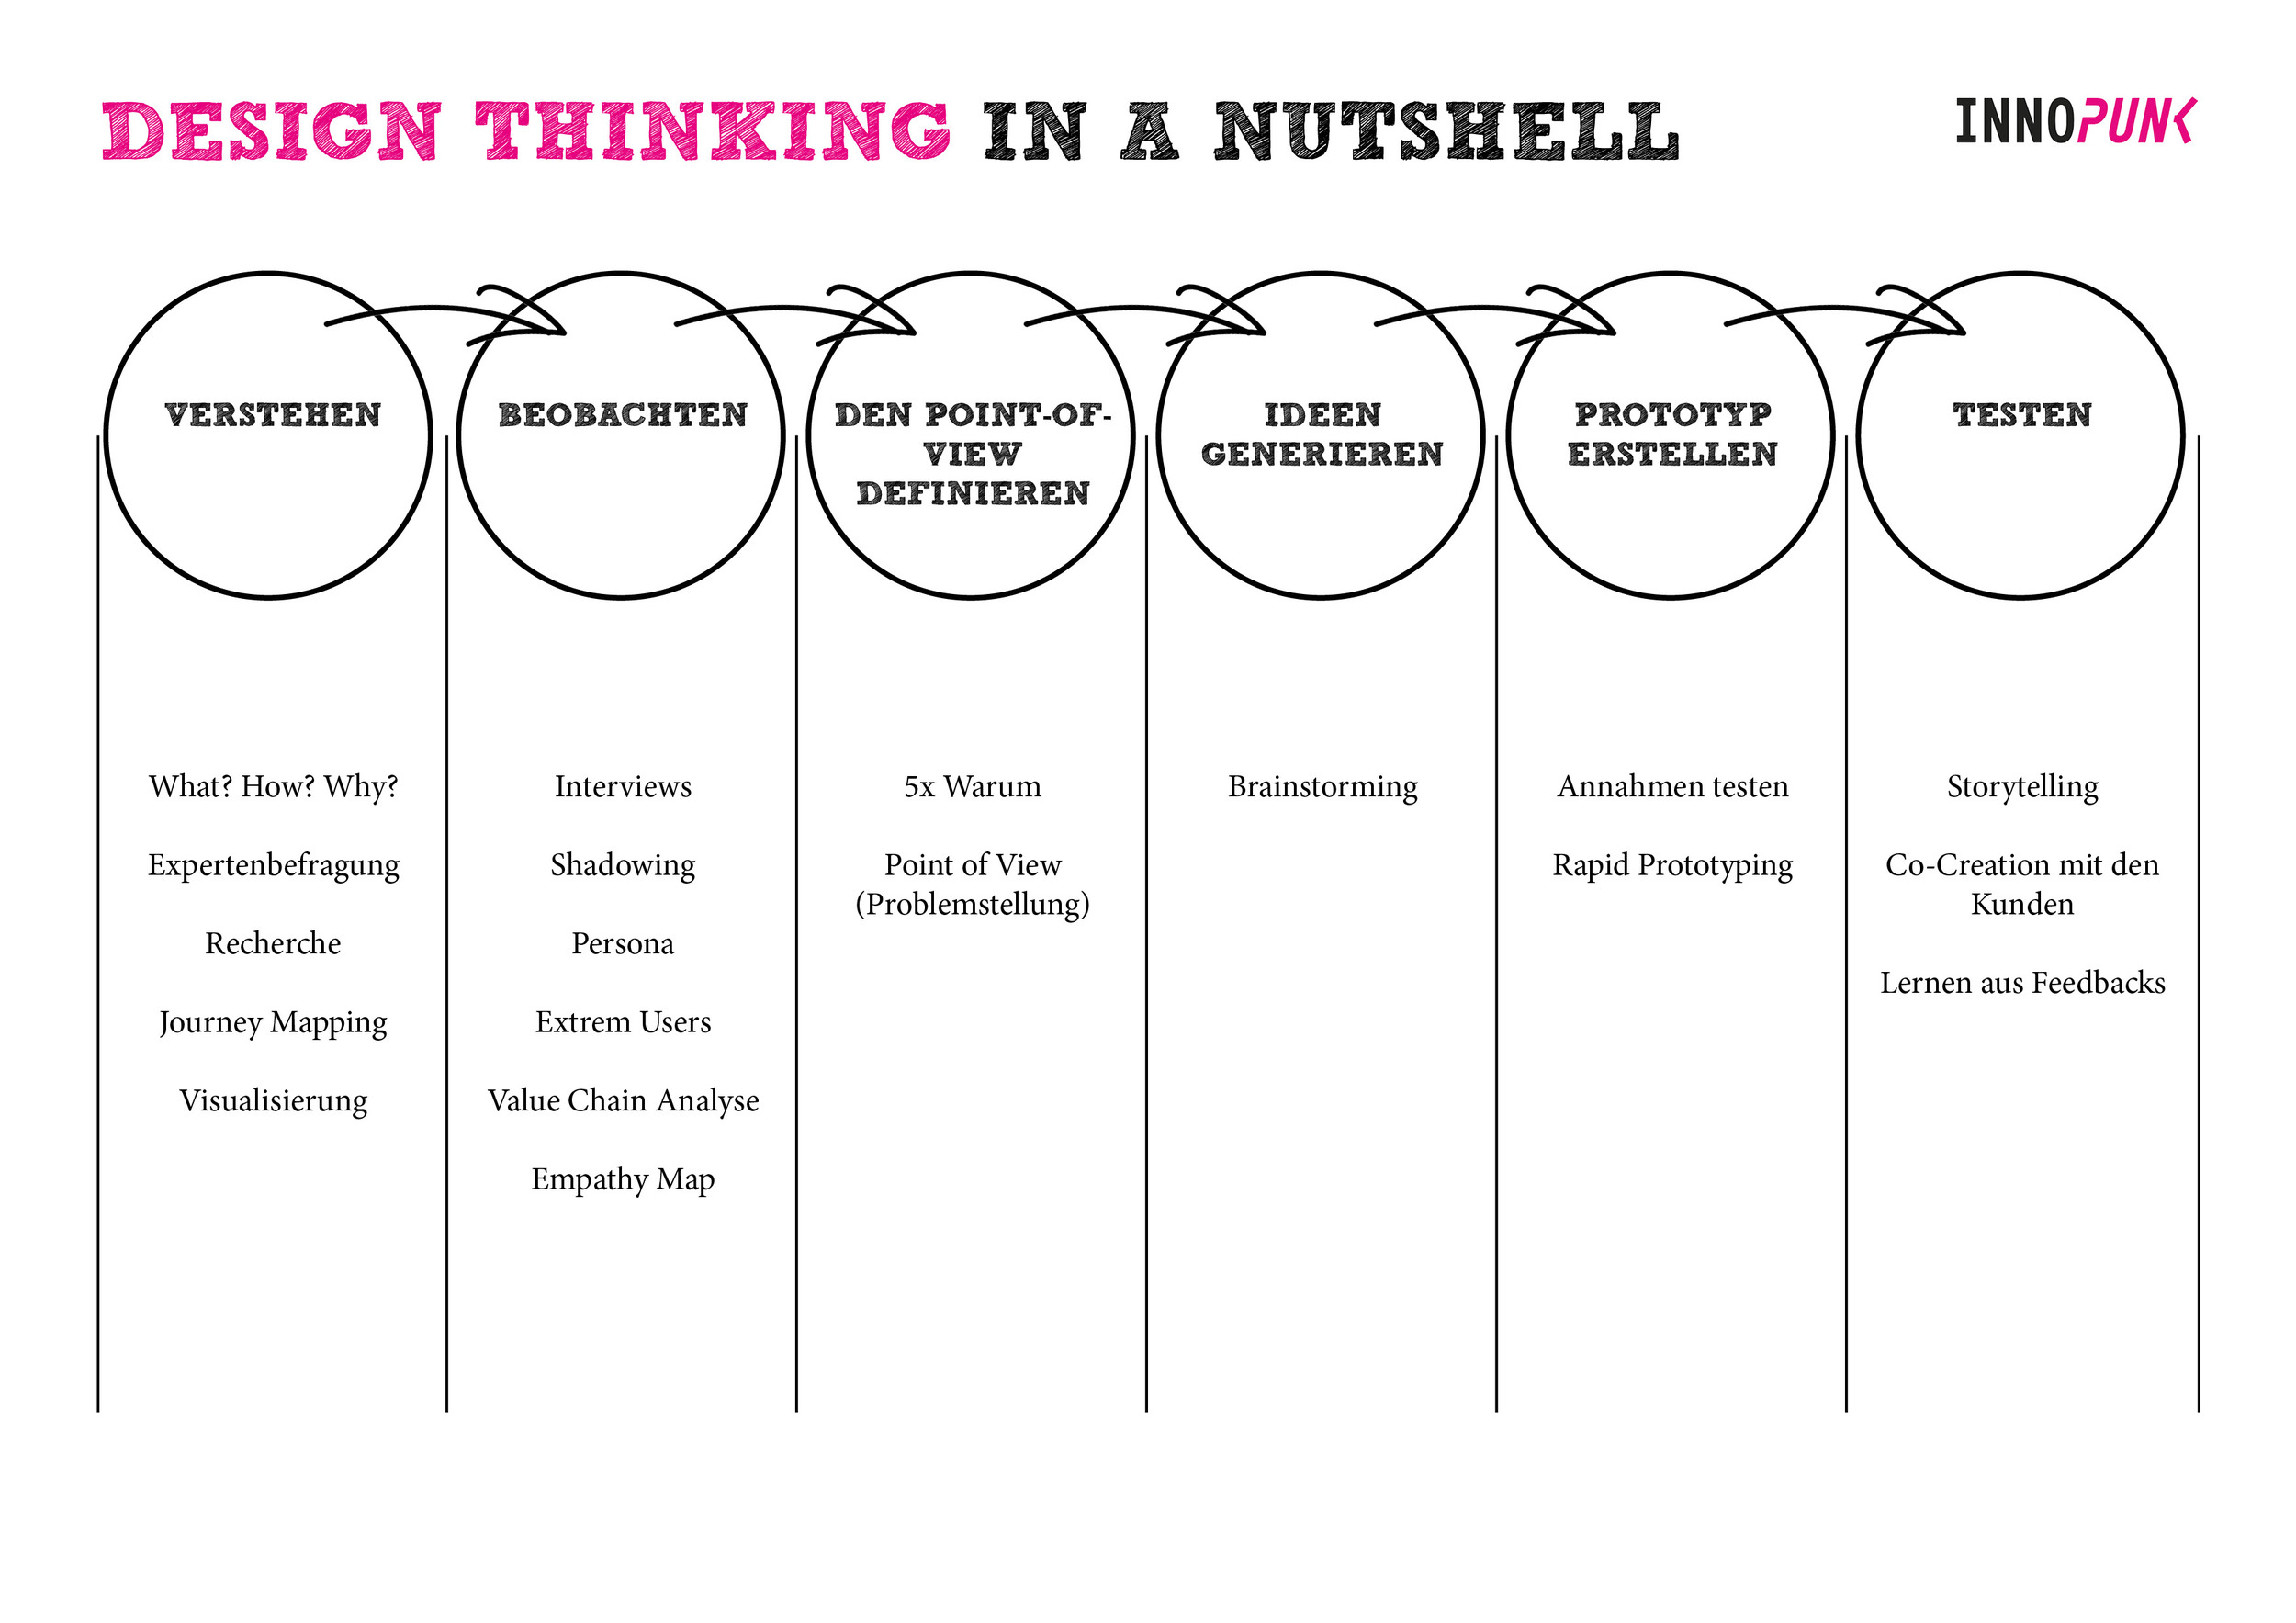 Design Thinking in a Nutshell-2.jpg